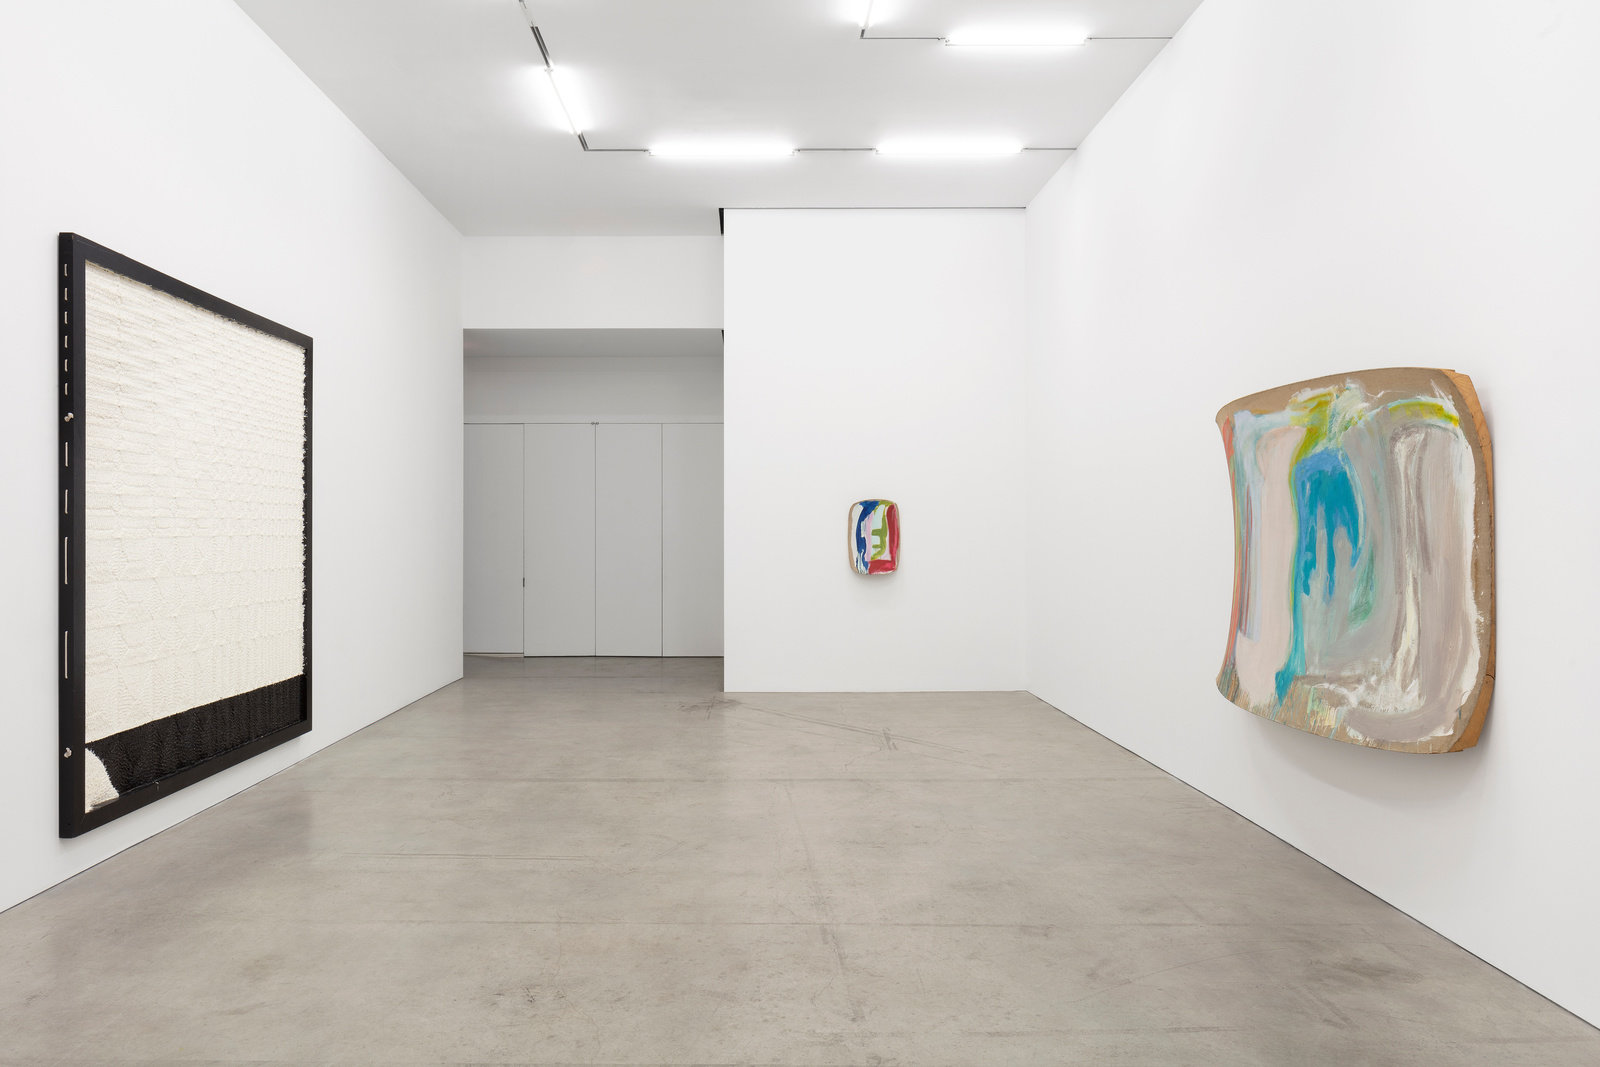 An installation view of three wall works: a black and white piece of Joe Zucker and two paintings by Ron Gorchov.